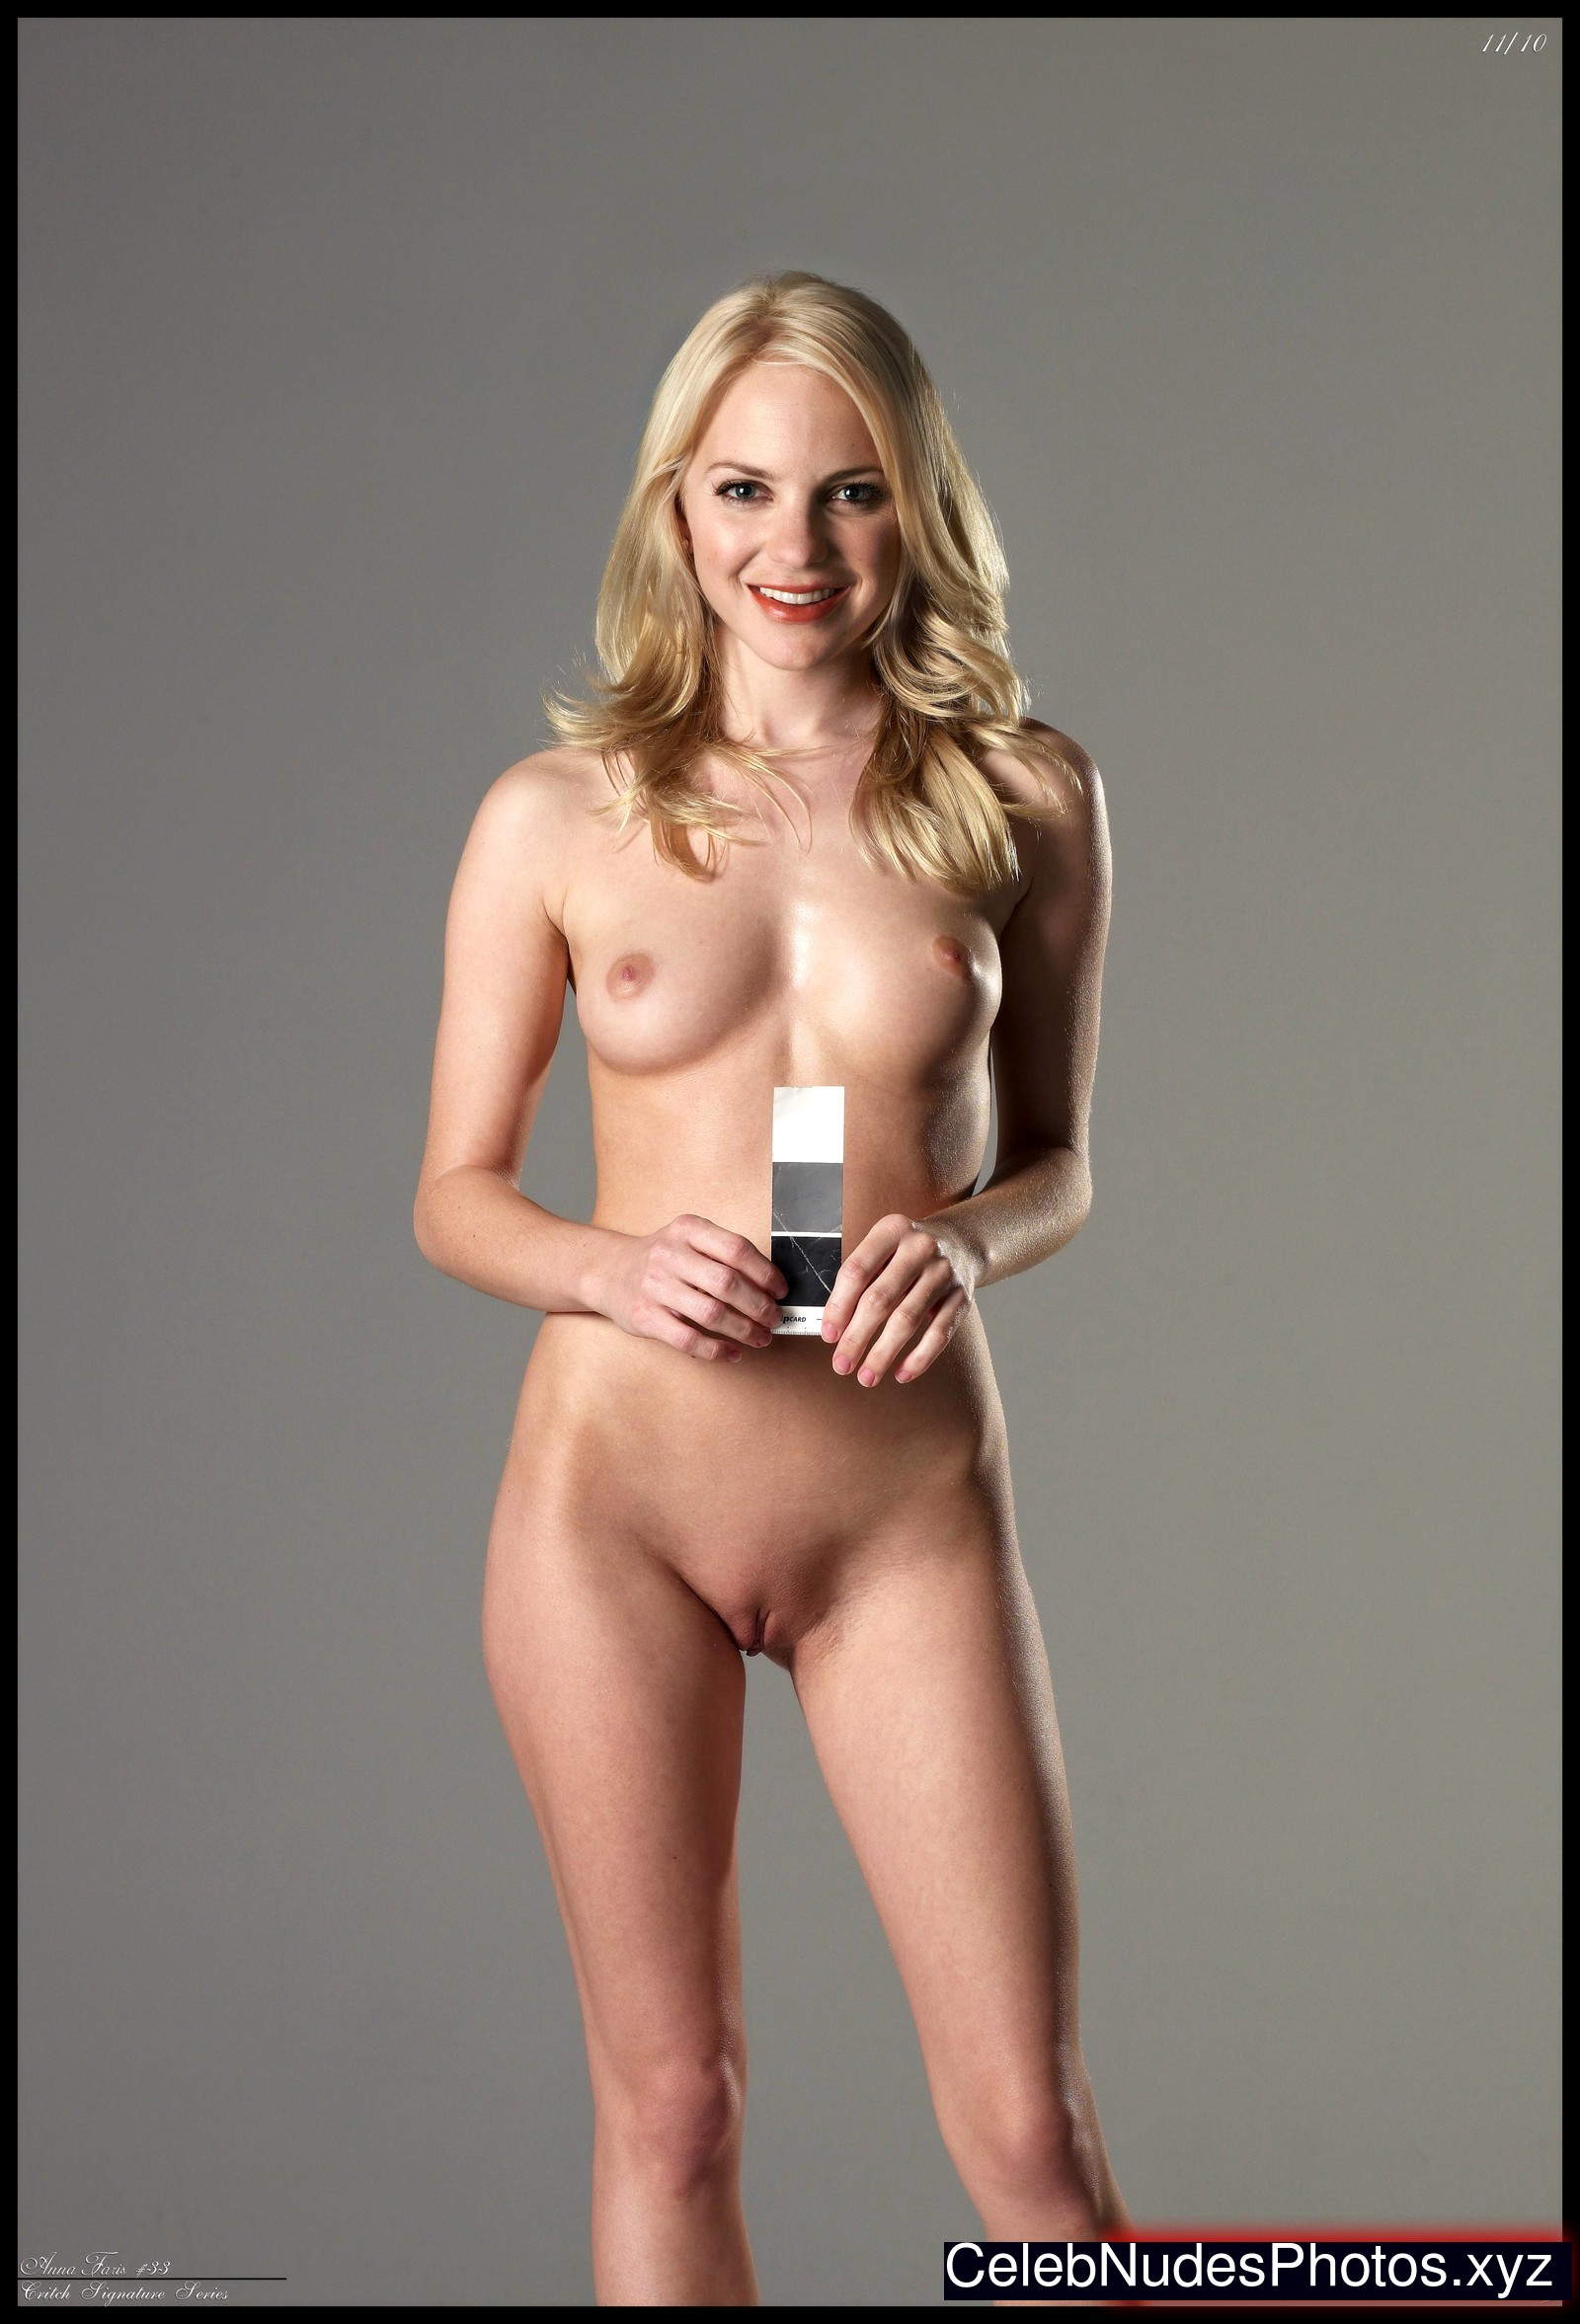 from Judson anna faris movie nudes